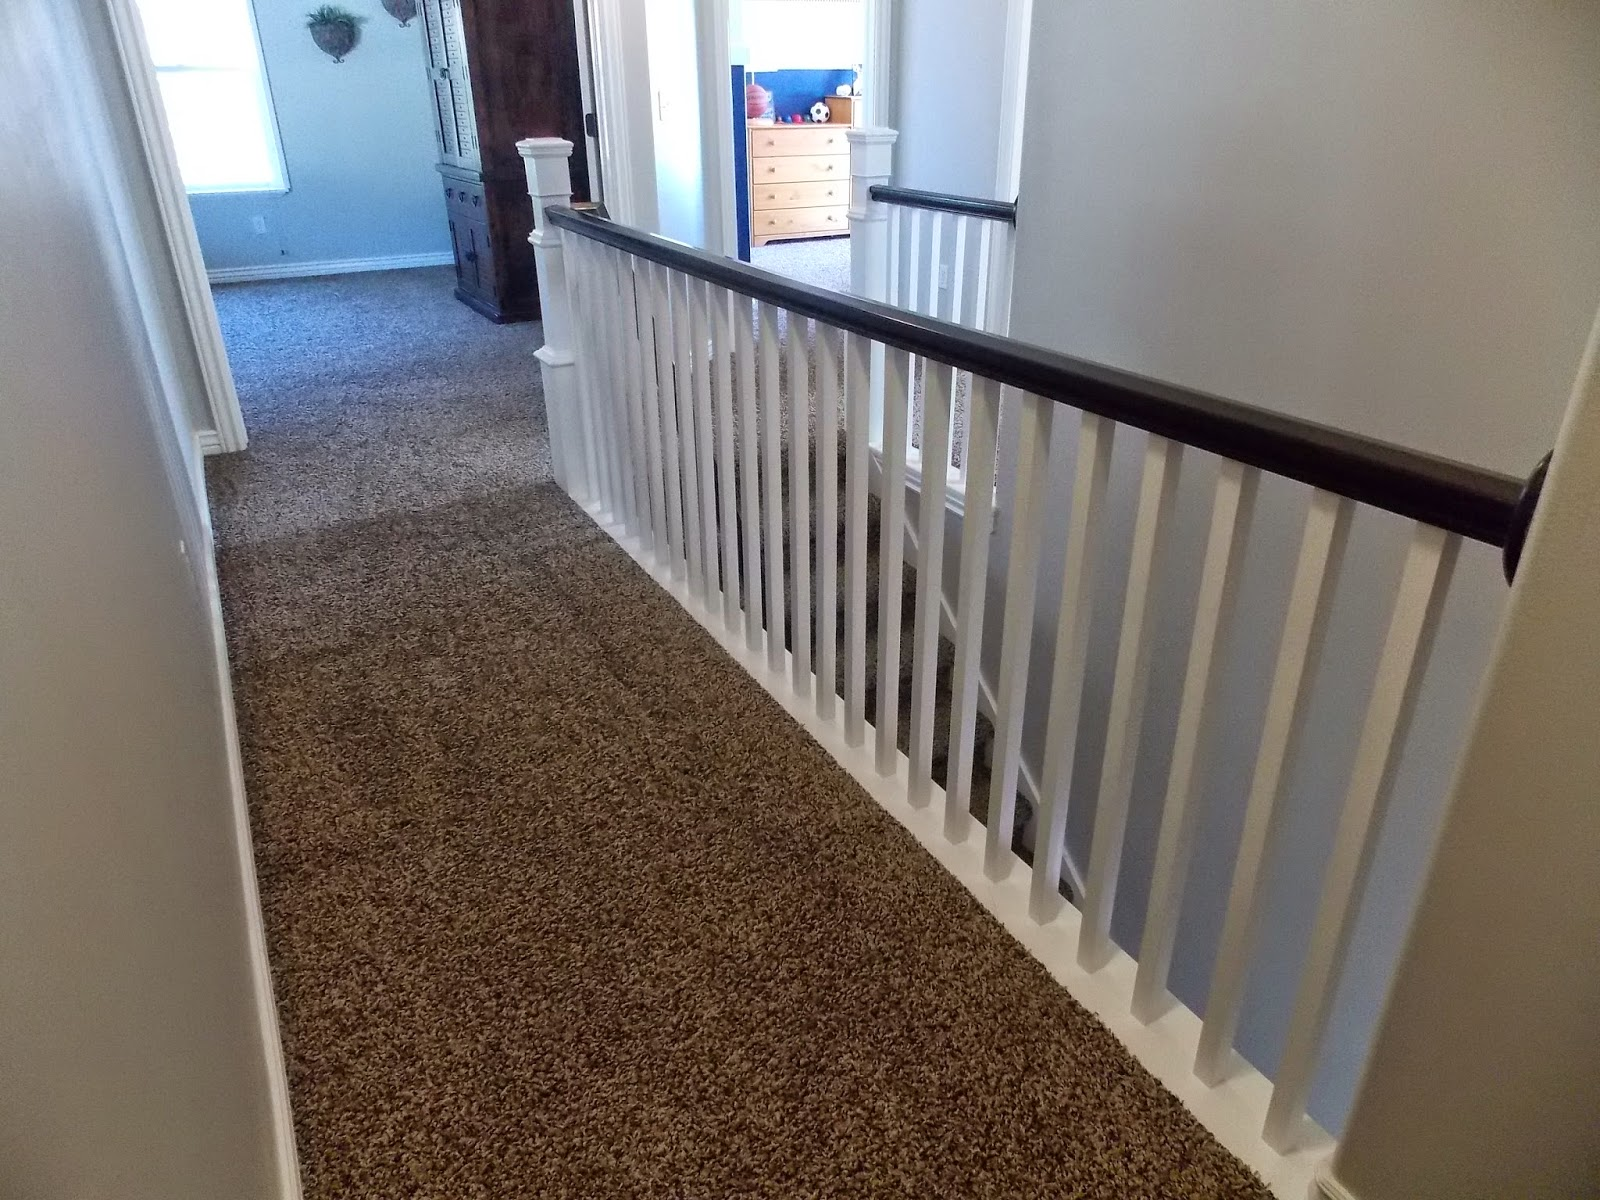 banister after replacing spindles and building newel post around existing tda decorating and design featured